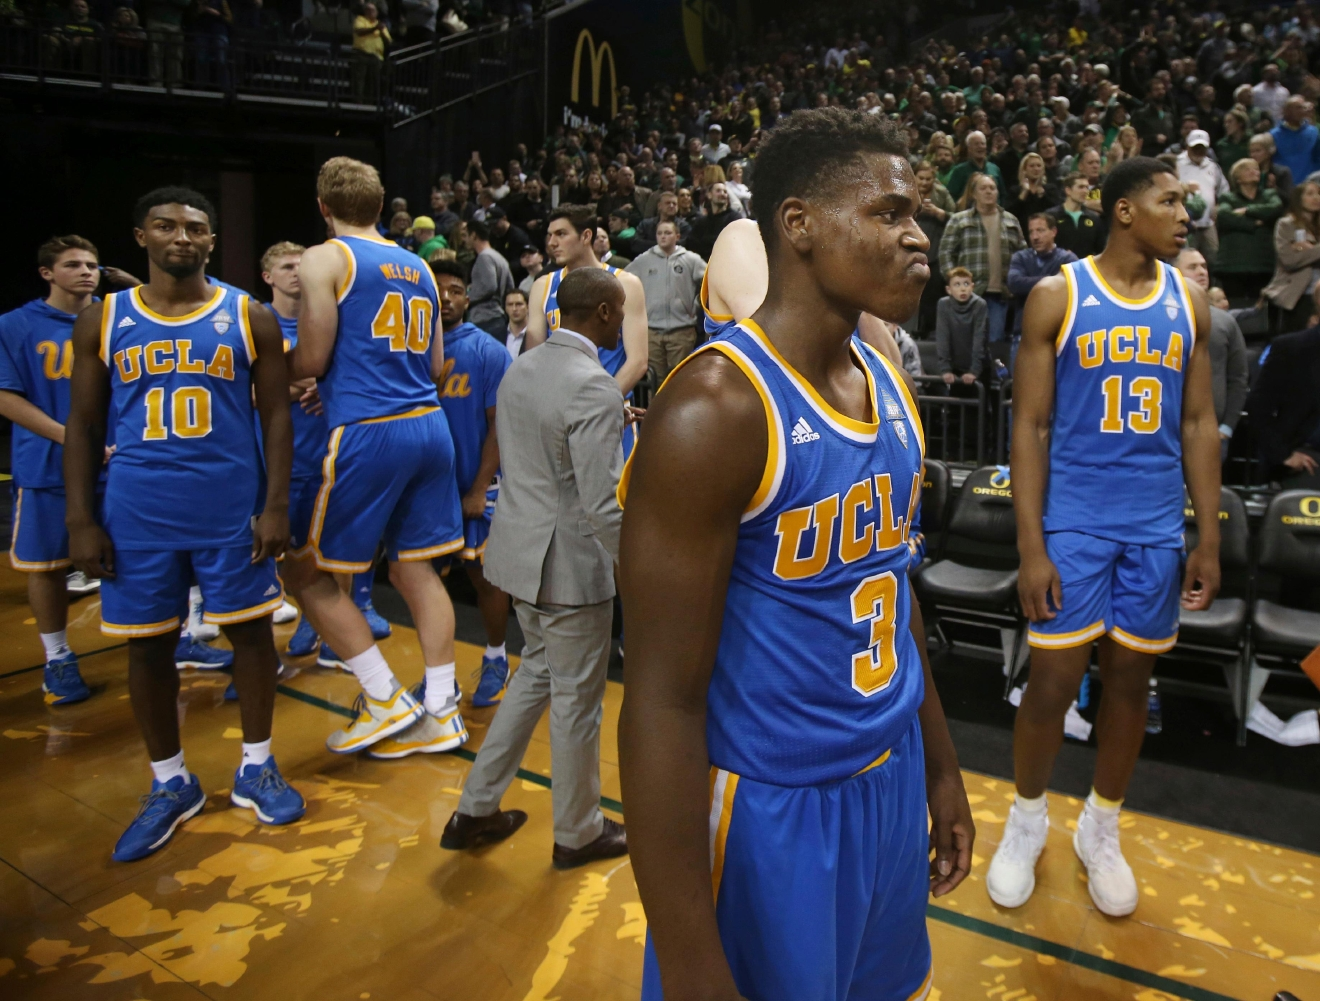 UCLA players including Aaron Holiday, center, and Ike Anigbogu, right, look on as officials try to clear the floor so the game can resume after Oregon's Dillon Brooks sunk a shot with .08 seconds left to play in an NCAA college basketball game Wednesday, Dec. 28, 2016, in Eugene, Ore. (AP Photo/Chris Pietsch)